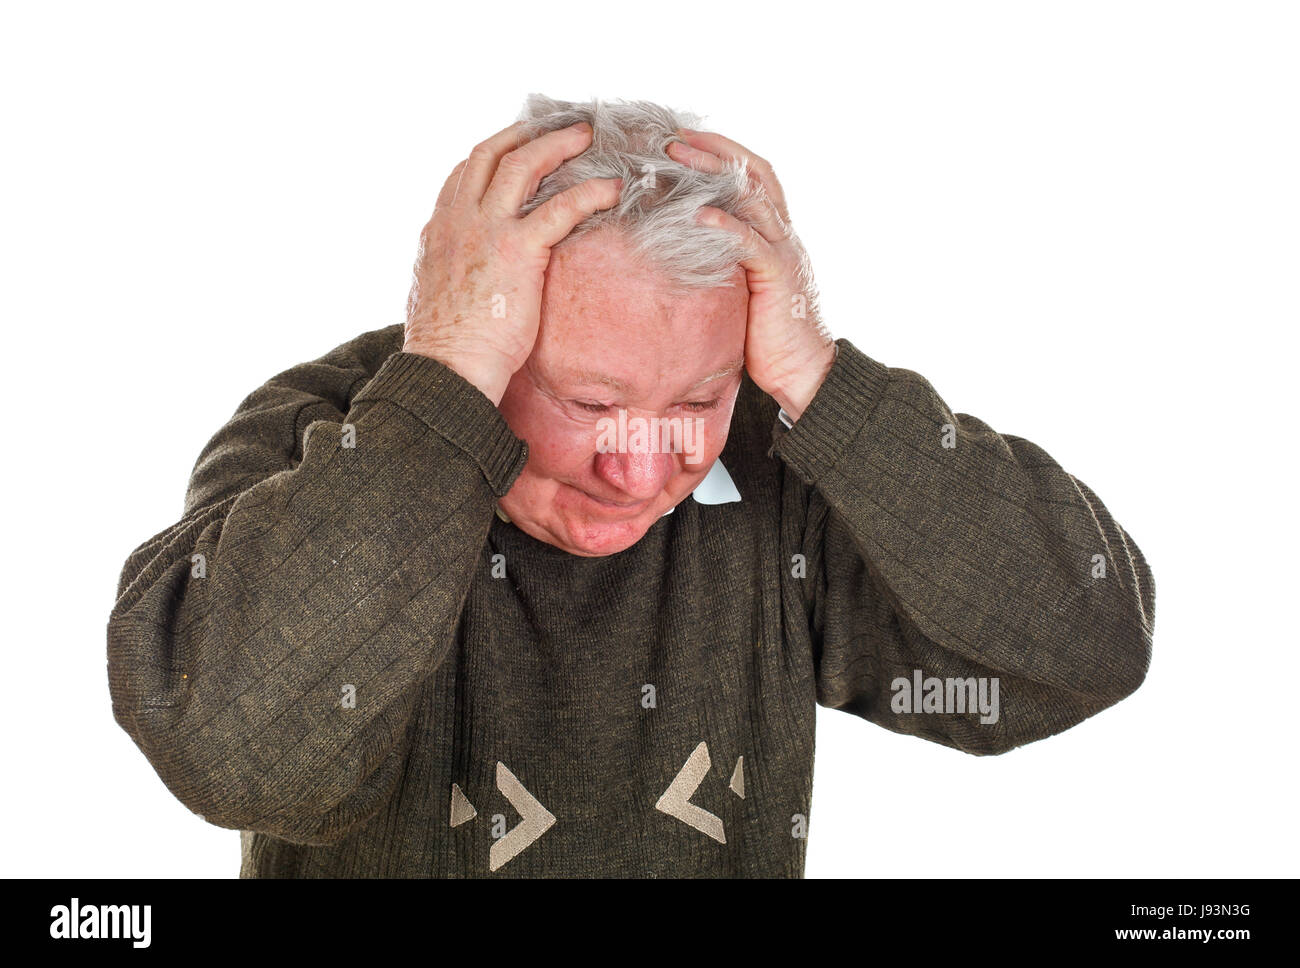 Picture of an old man having a serious headache - isolated background - Stock Image